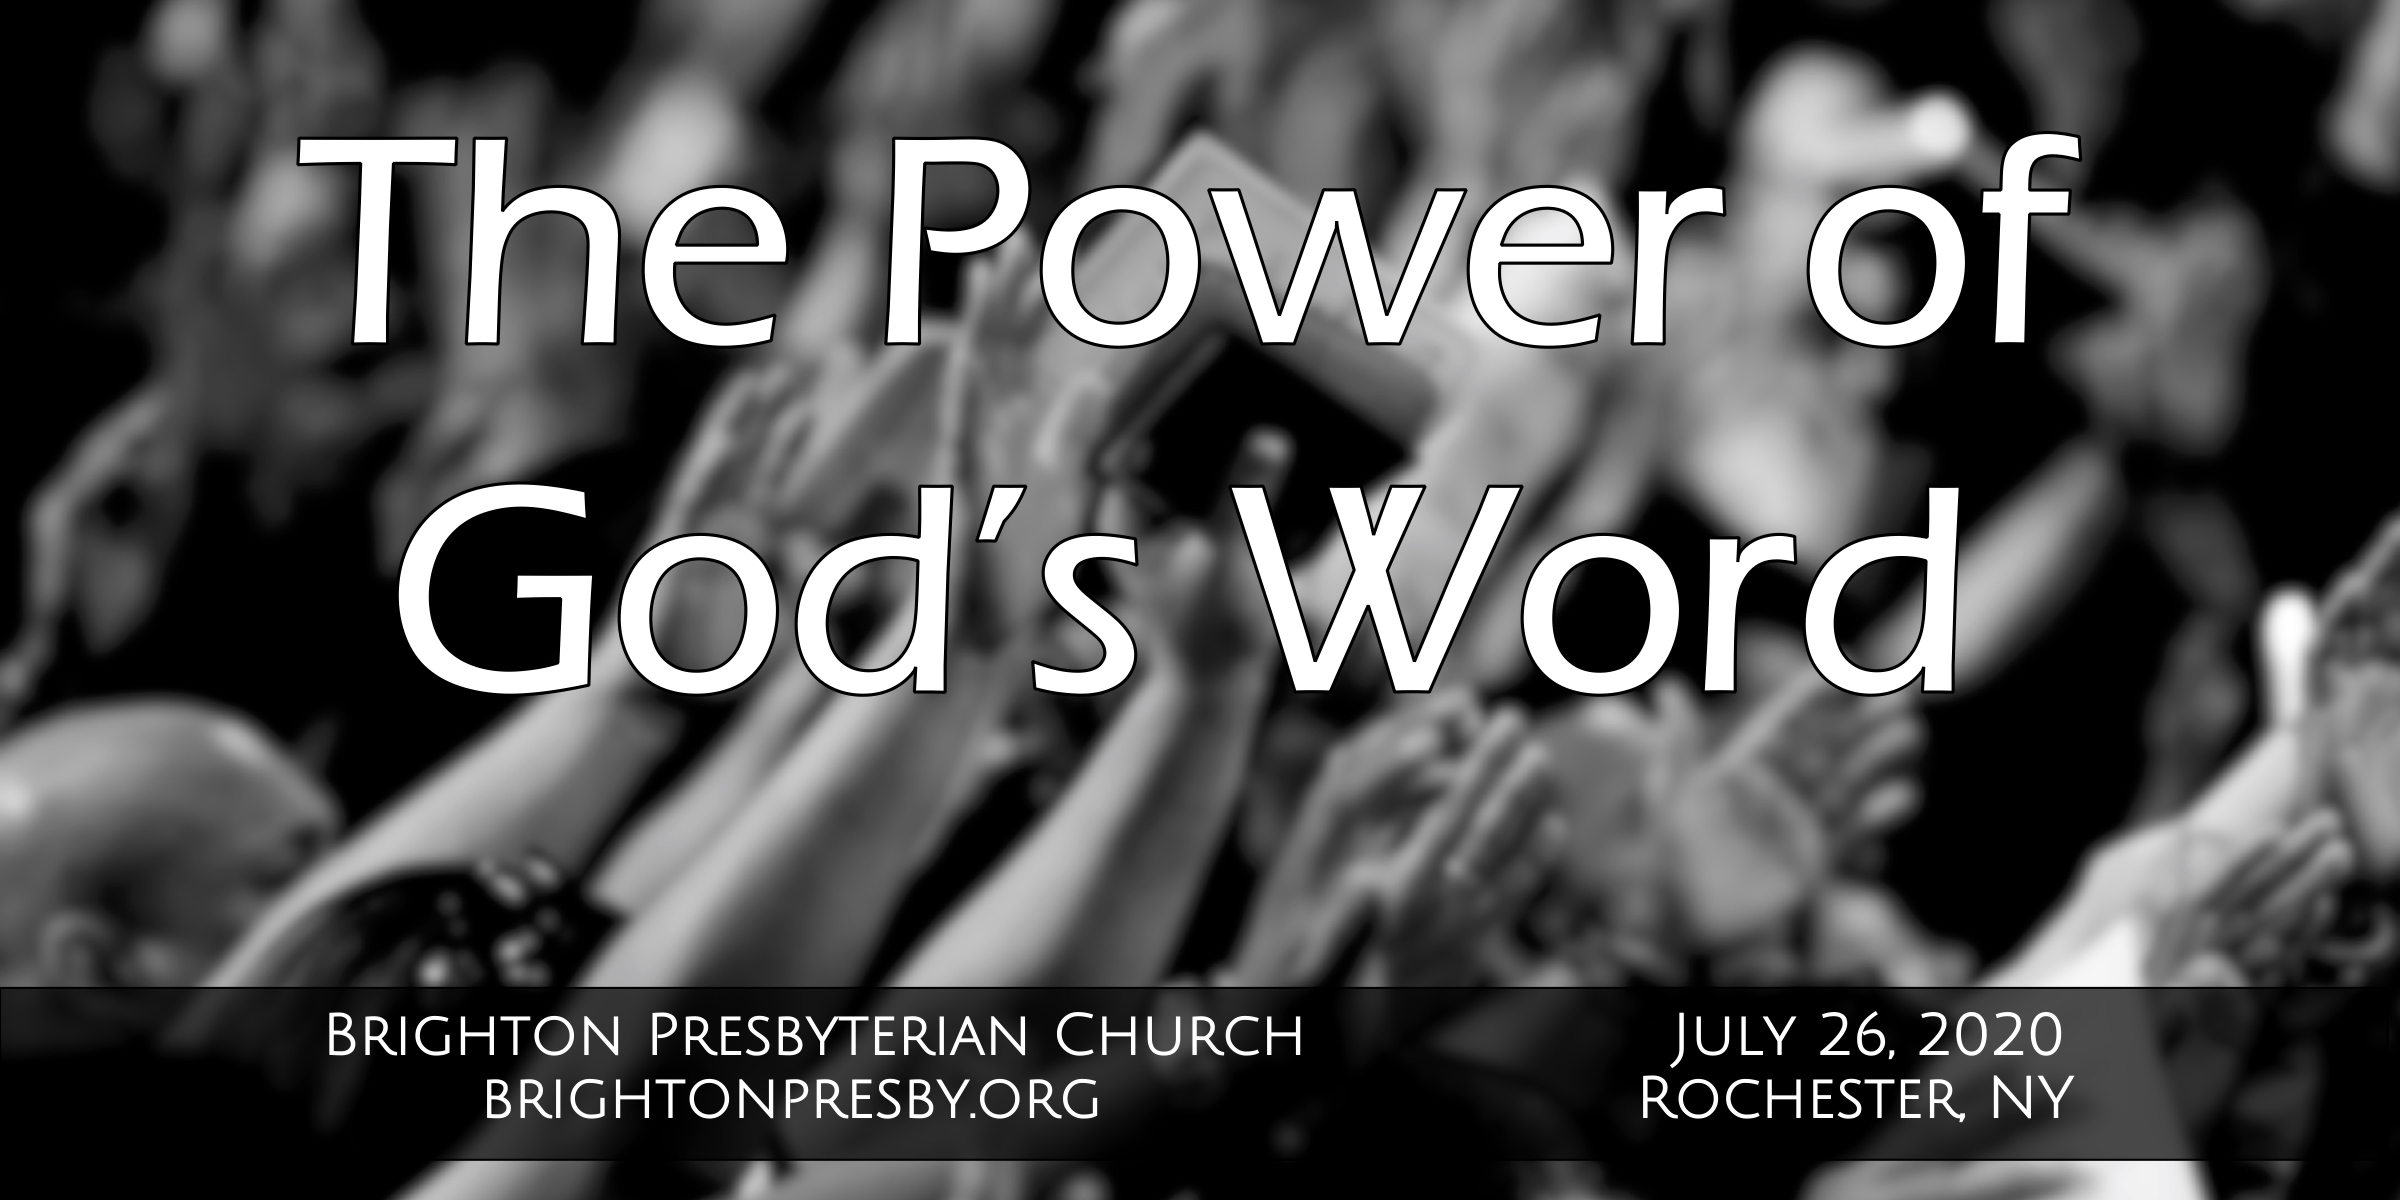 The Power of God's Word (Part 3 of 1 Thessalonians Series)